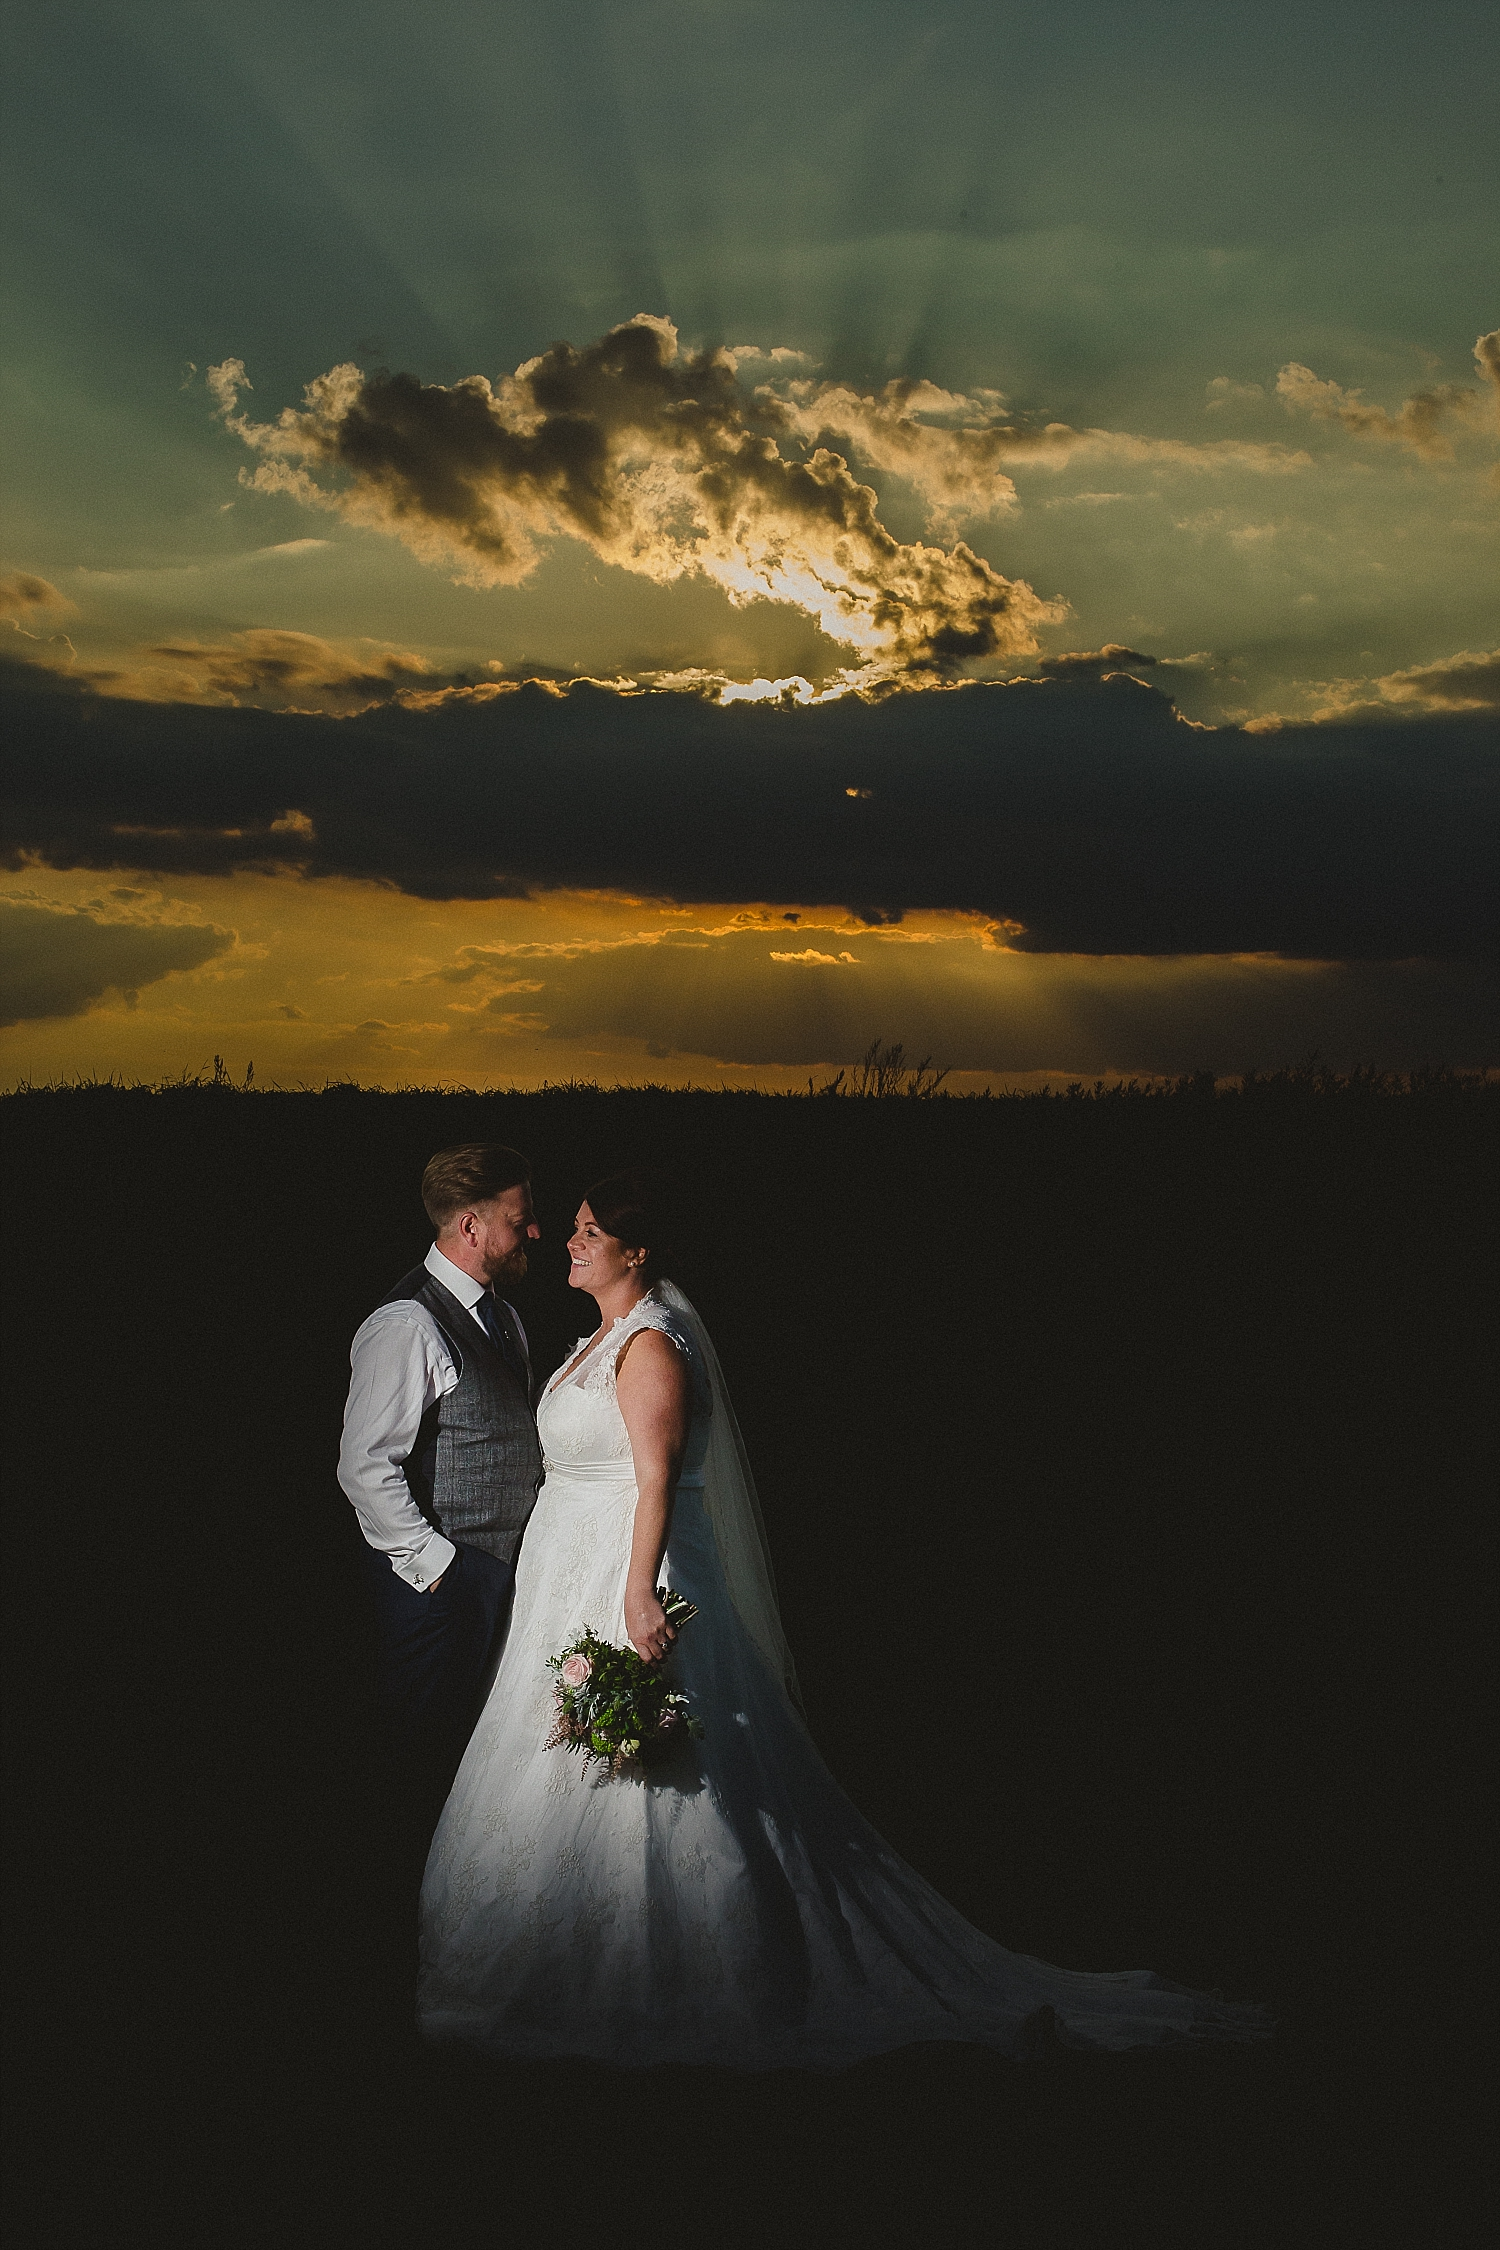 Moor Hall Wedding Photographer - Portraits at Sunset